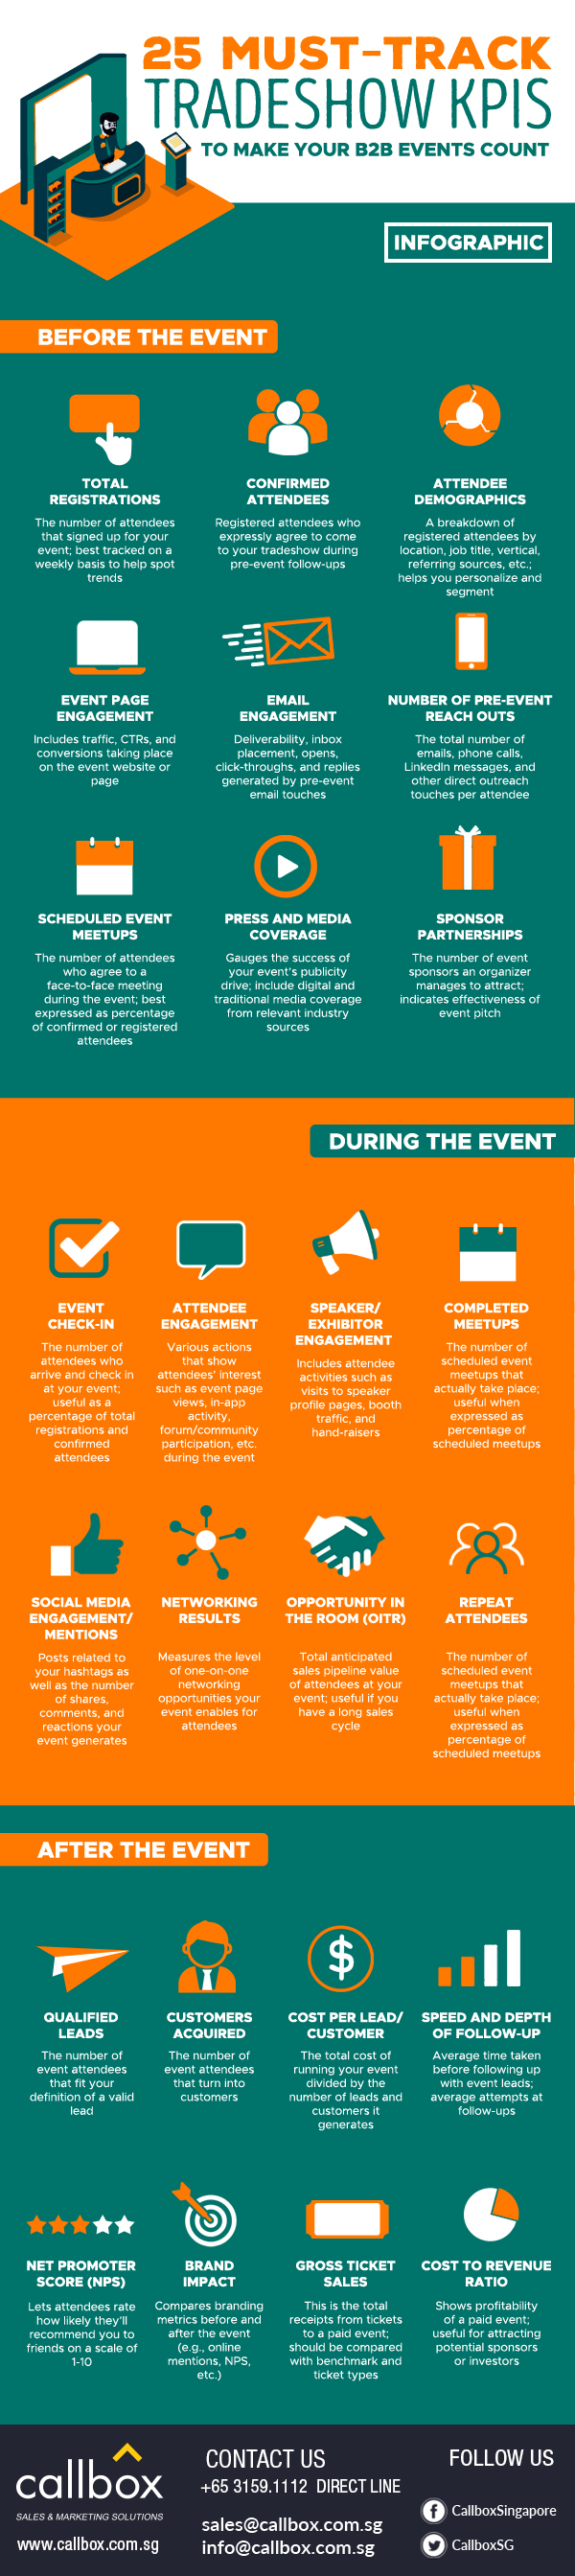 25 Must-Track Tradeshow KPIs to Make your Events Count